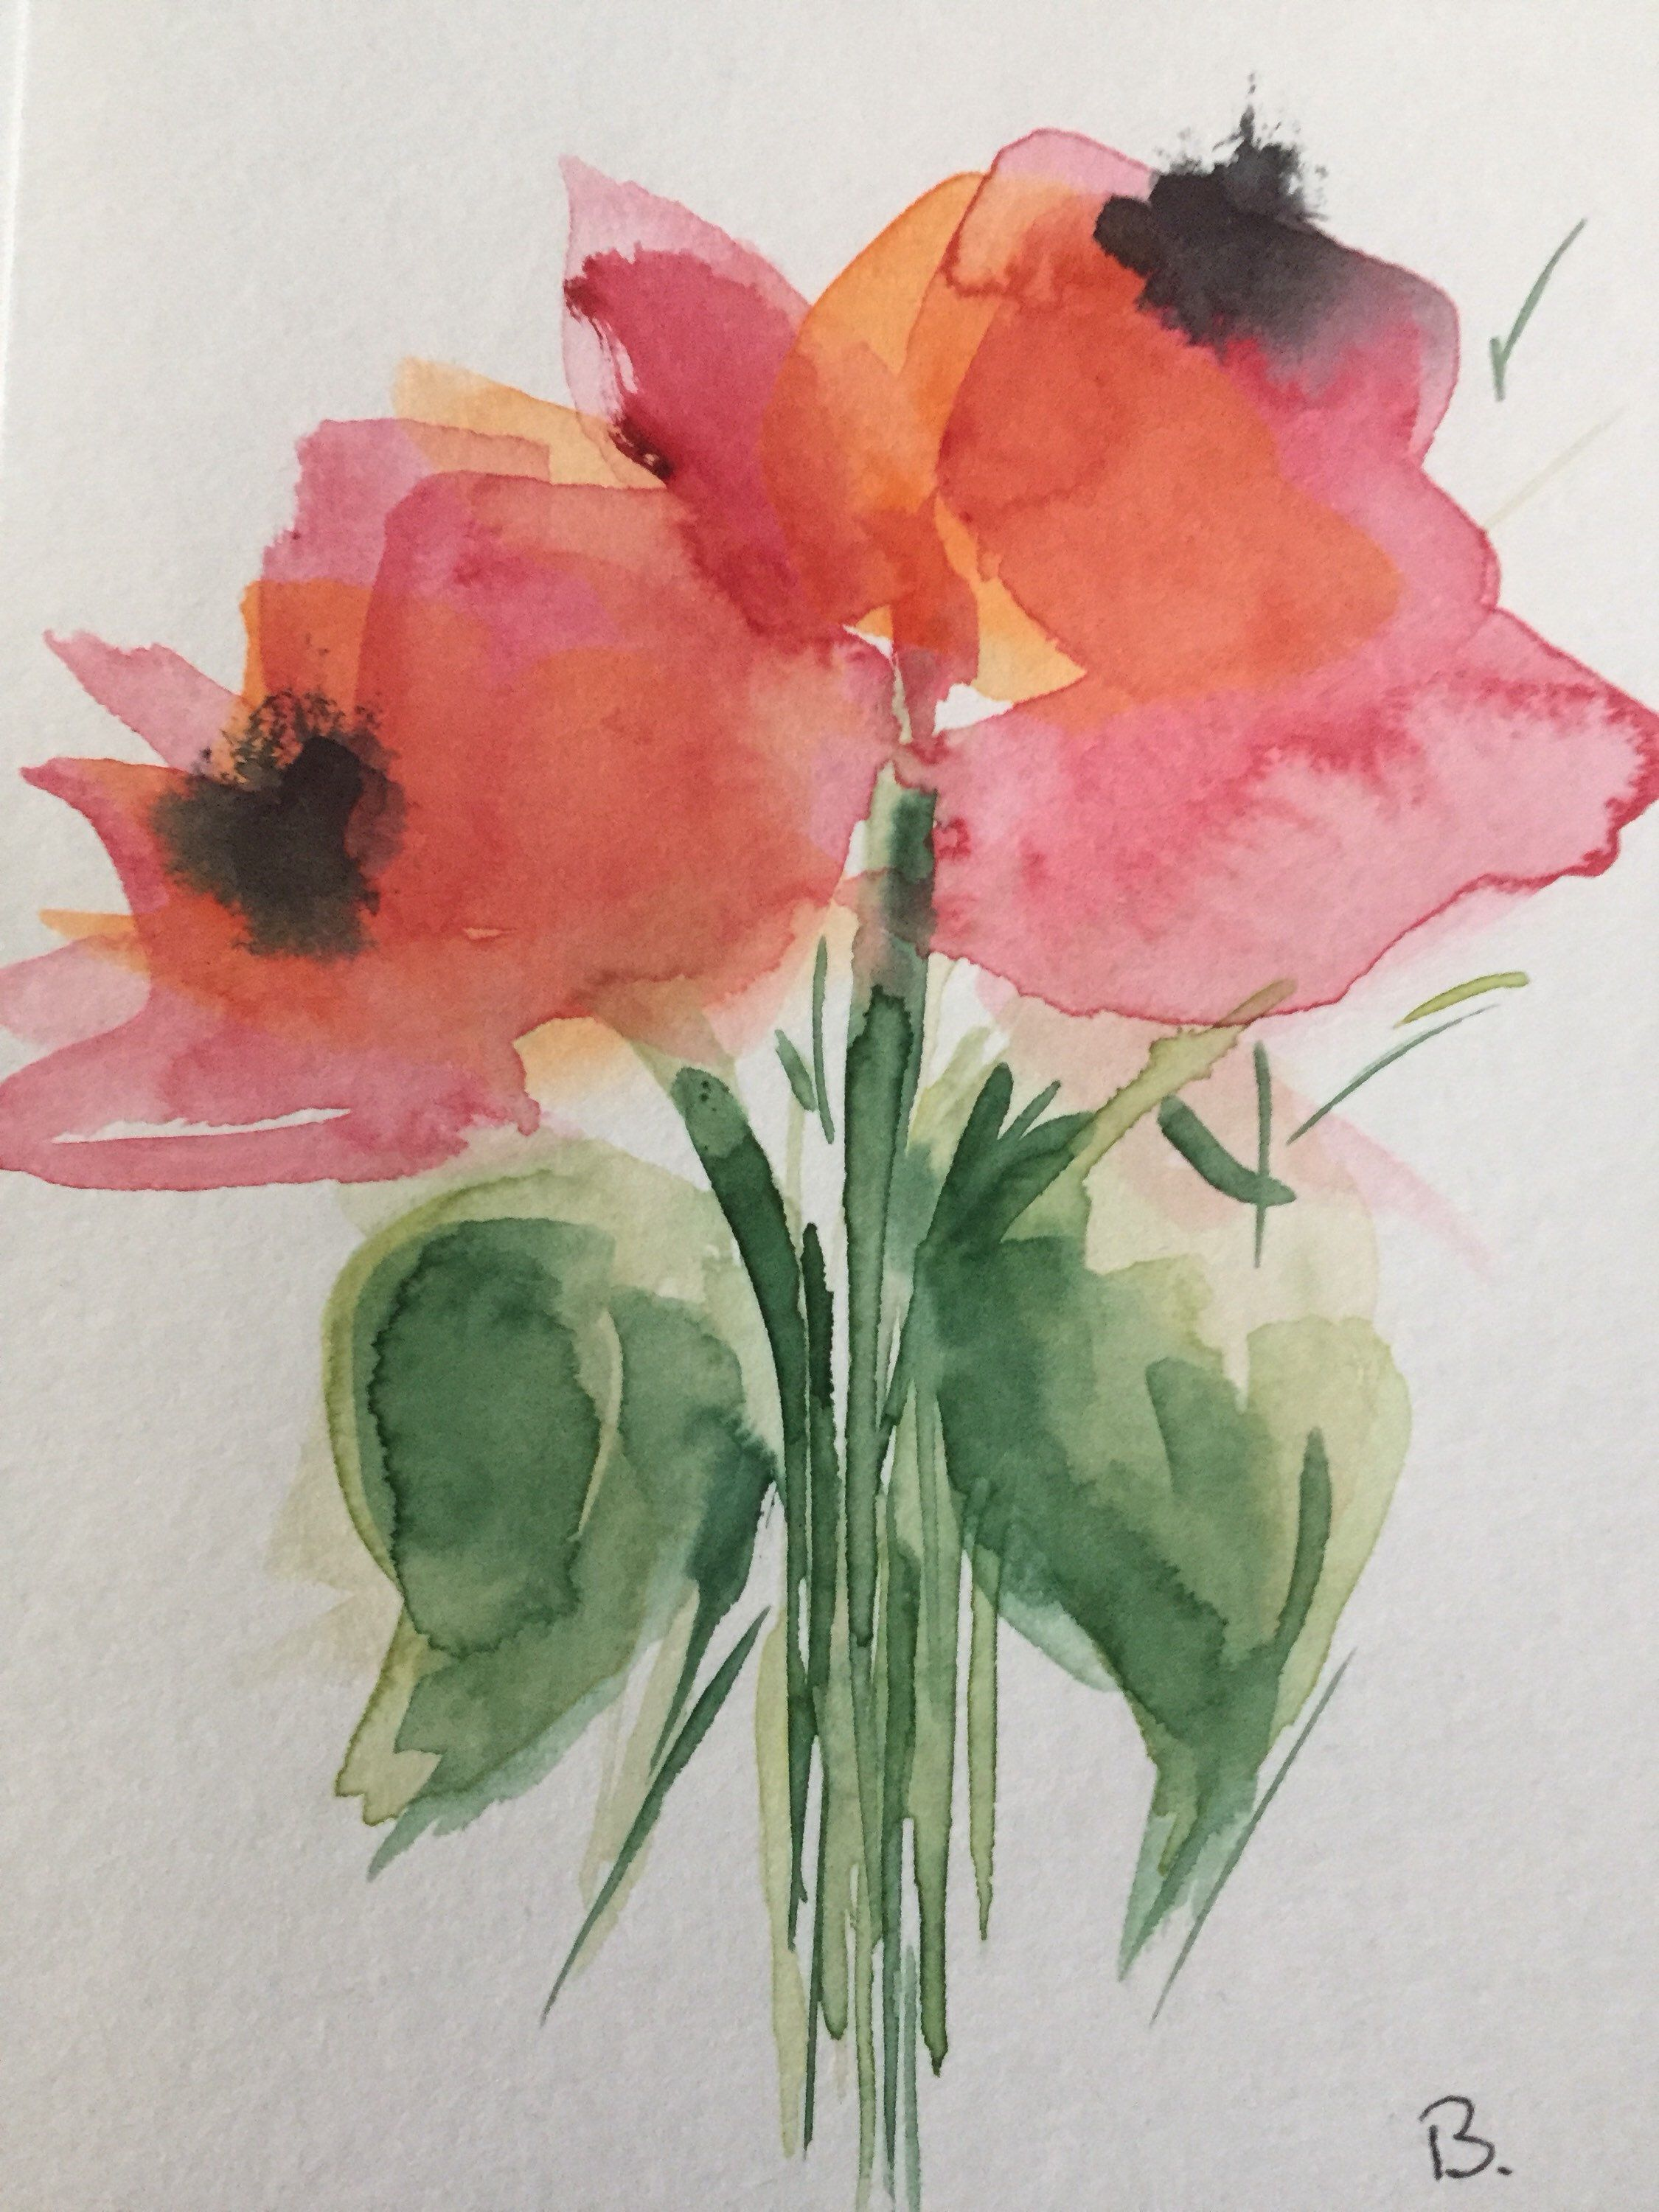 Original Aquarell Aquarellpostkarte Blumen Watercolor Flowers